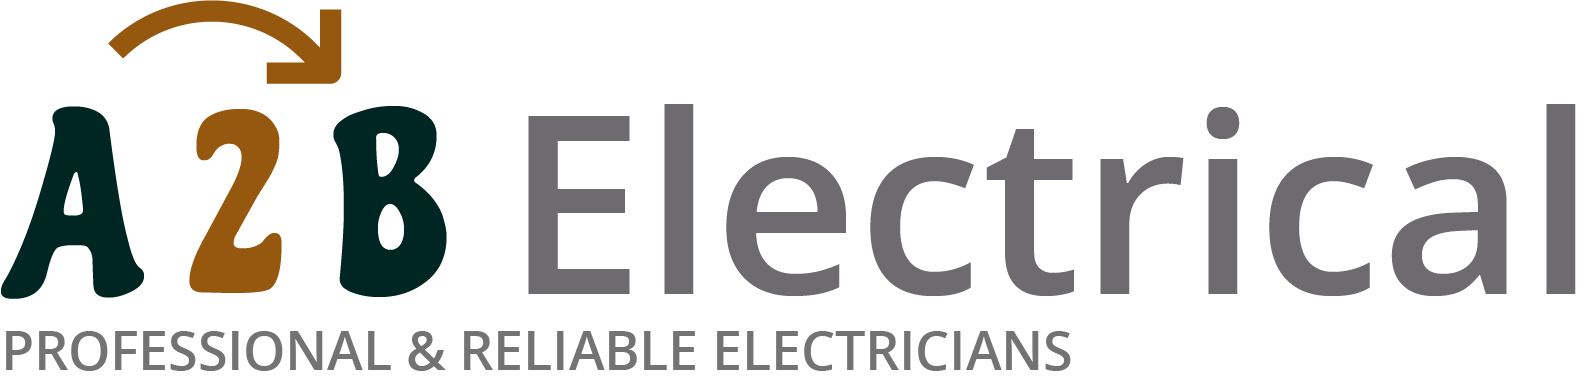 If you have electrical wiring problems in Cheam, we can provide an electrician to have a look for you.